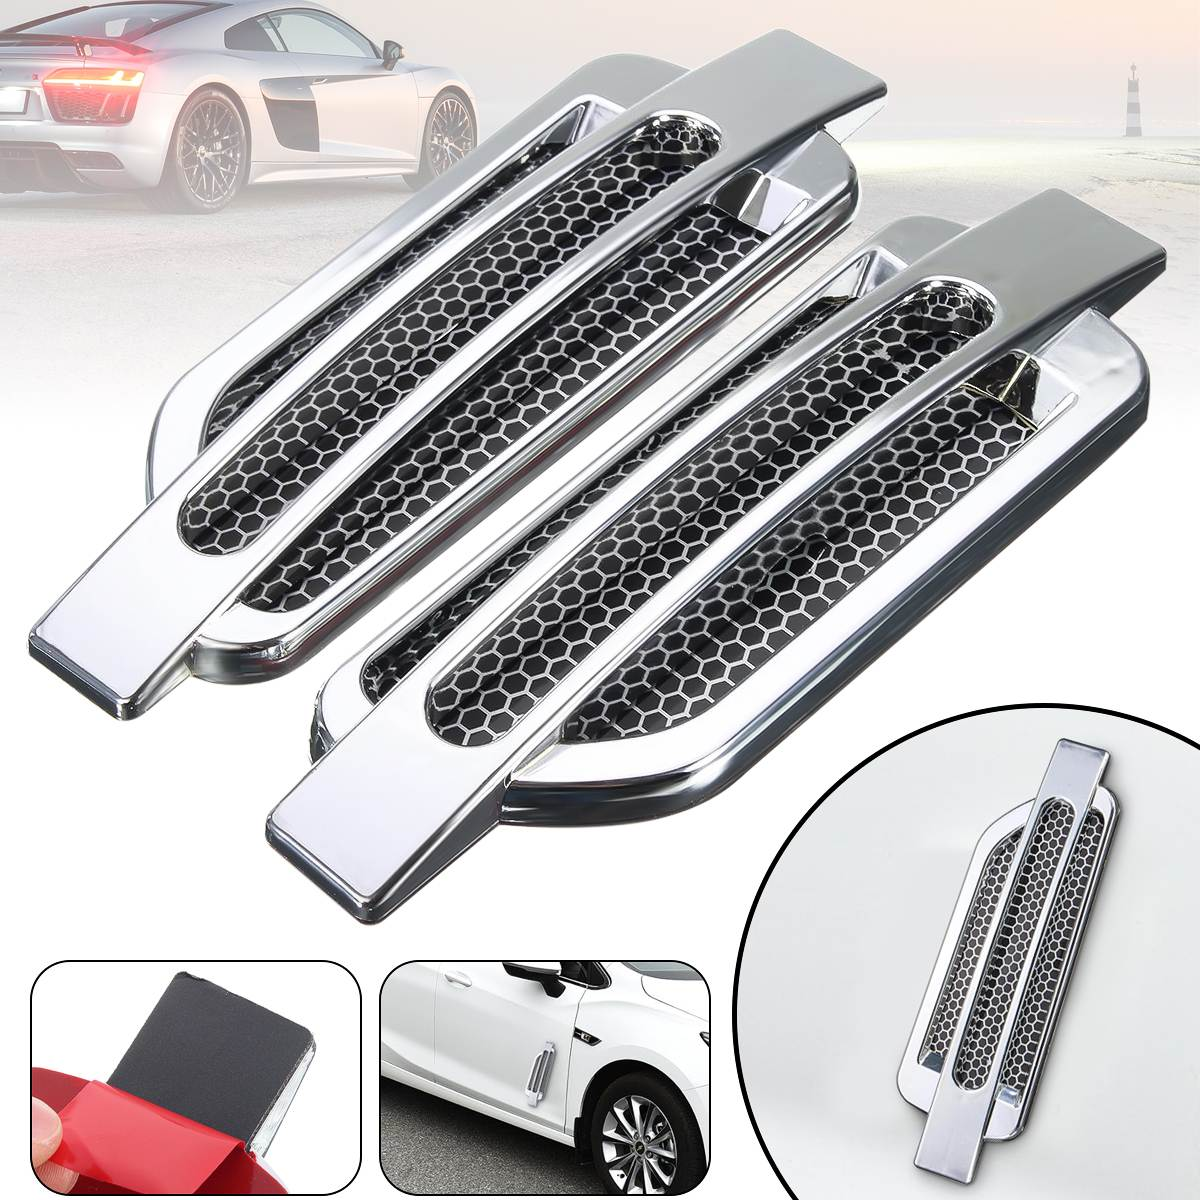 Chrome 2Pcs Car Auto Side Air Vent Intake Flow Cover Hole Grille Sticker Decoration For Honda For BMW Universal grille